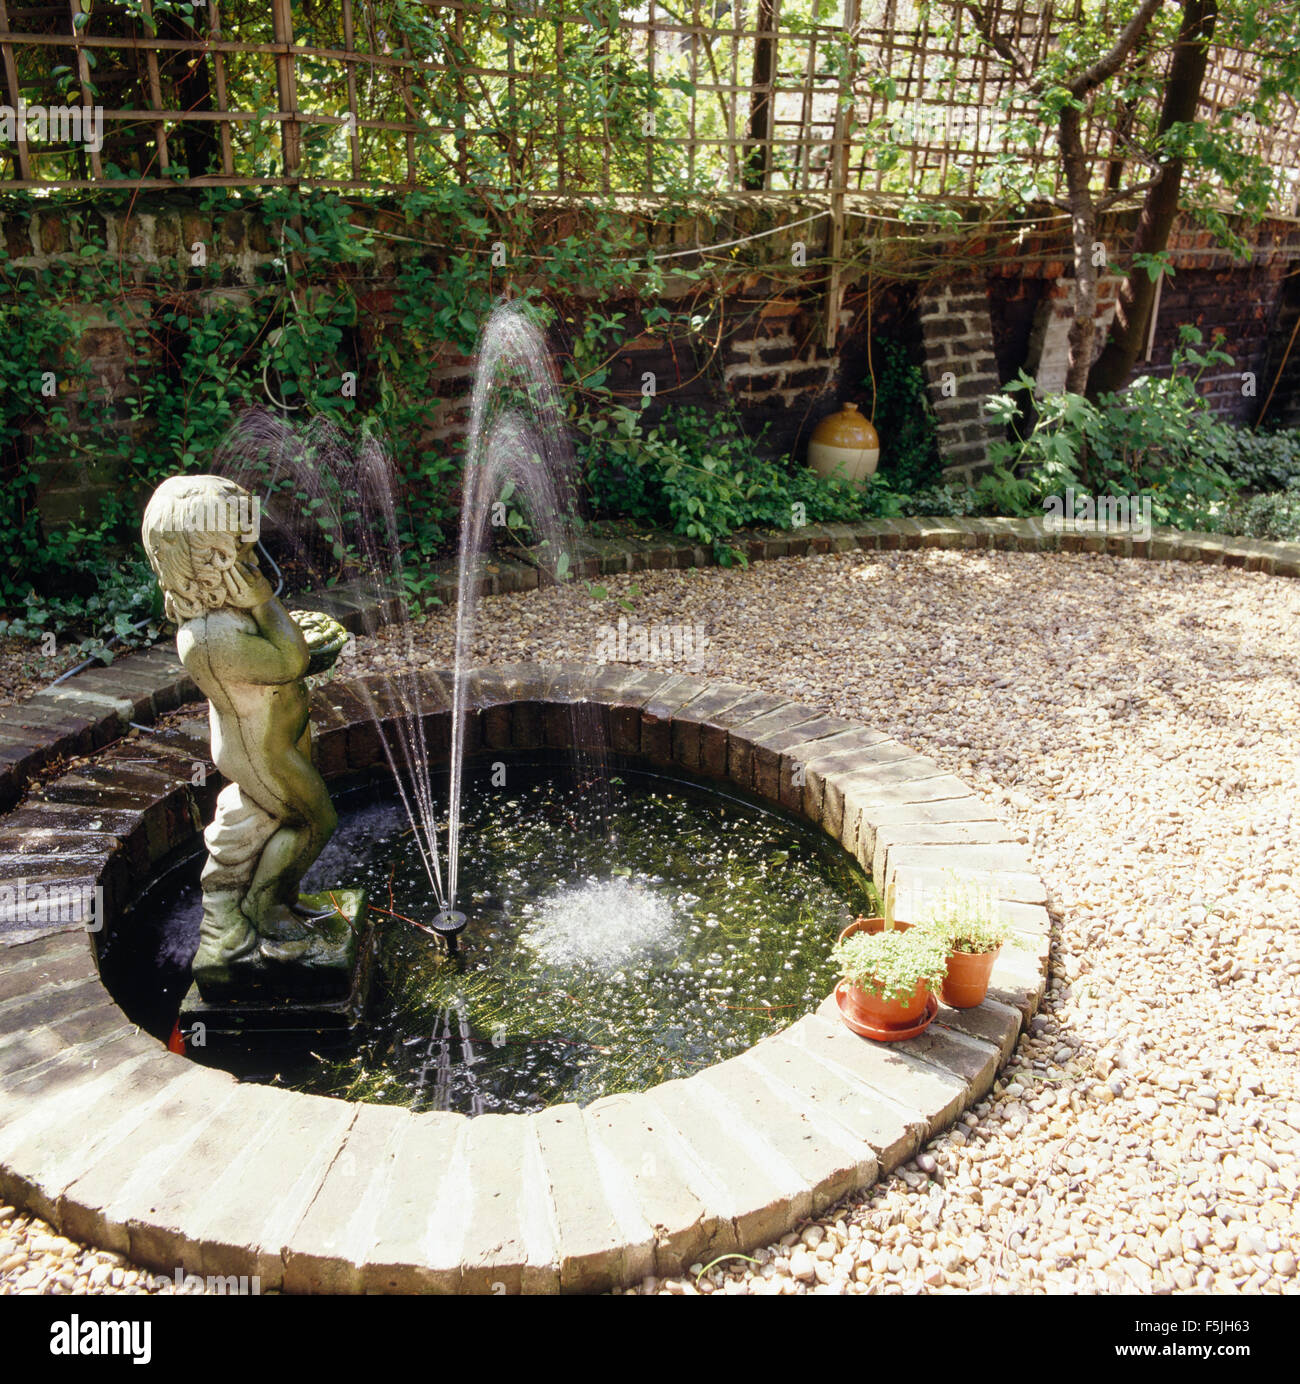 Stone statue of a boy in small circular pool with a for Circular garden ponds